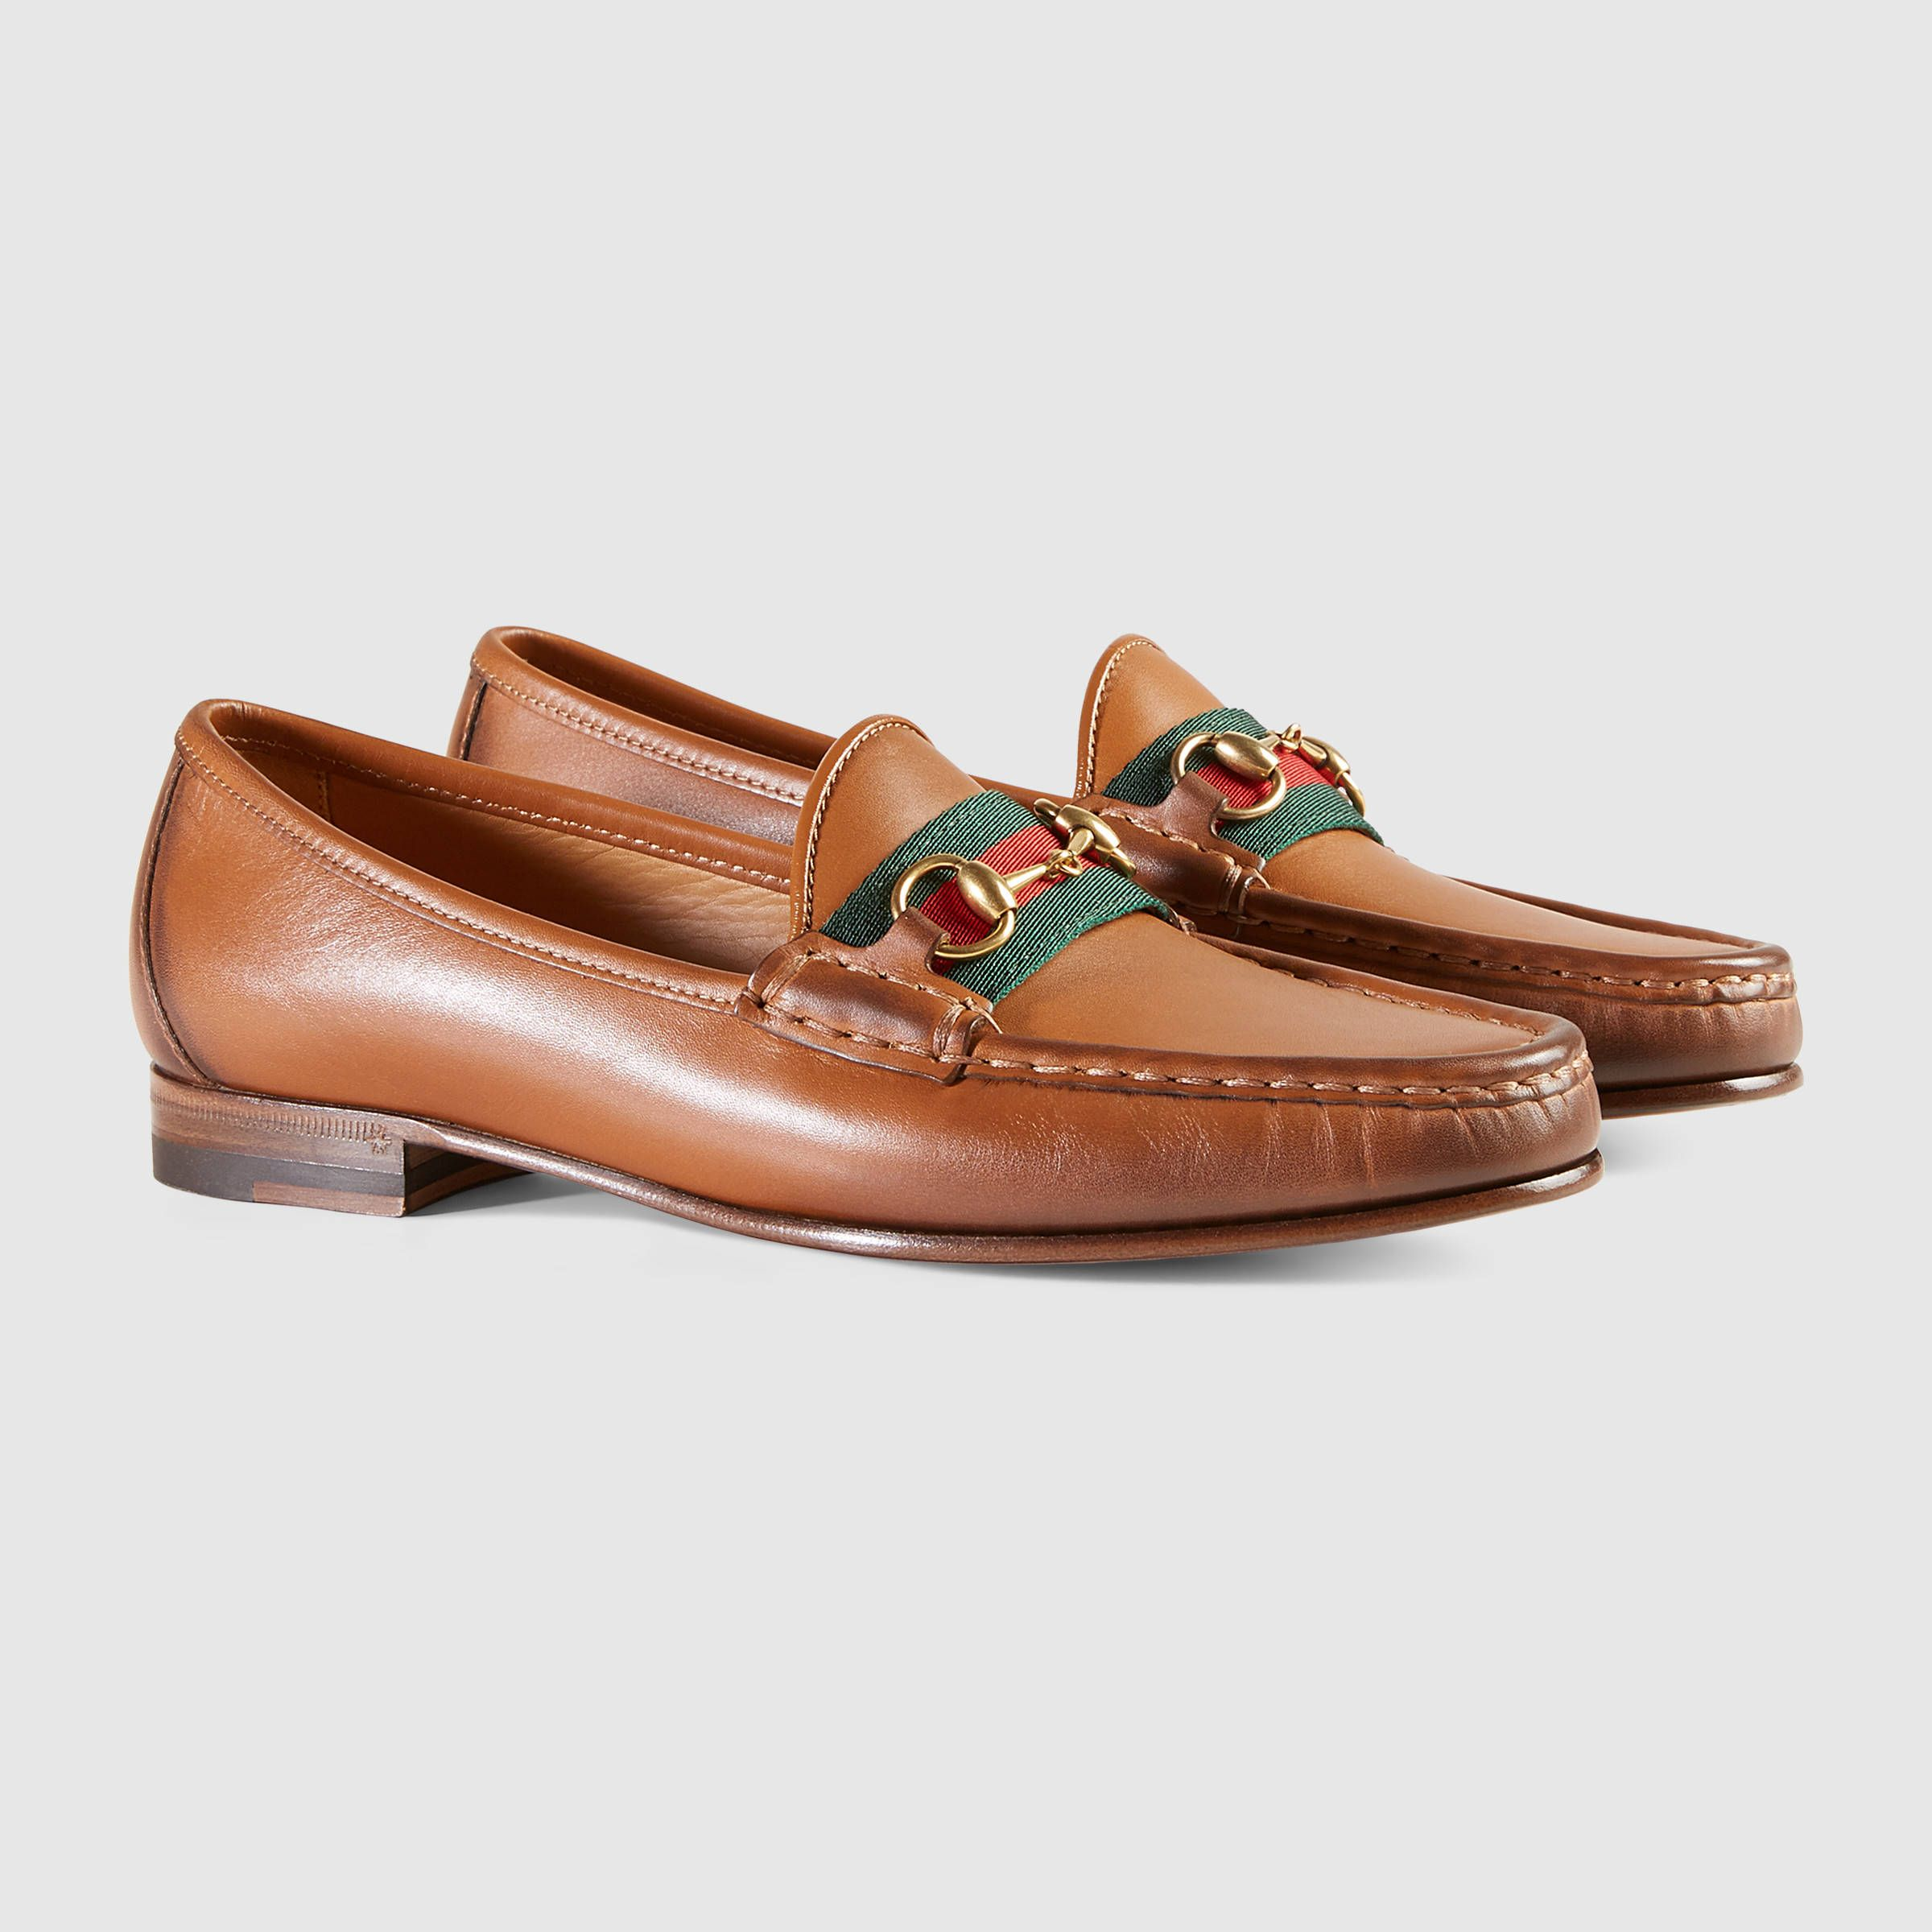 f7c6ec161 Gucci Women - Gucci Brown Leather horsebit loafers with web - $640.00